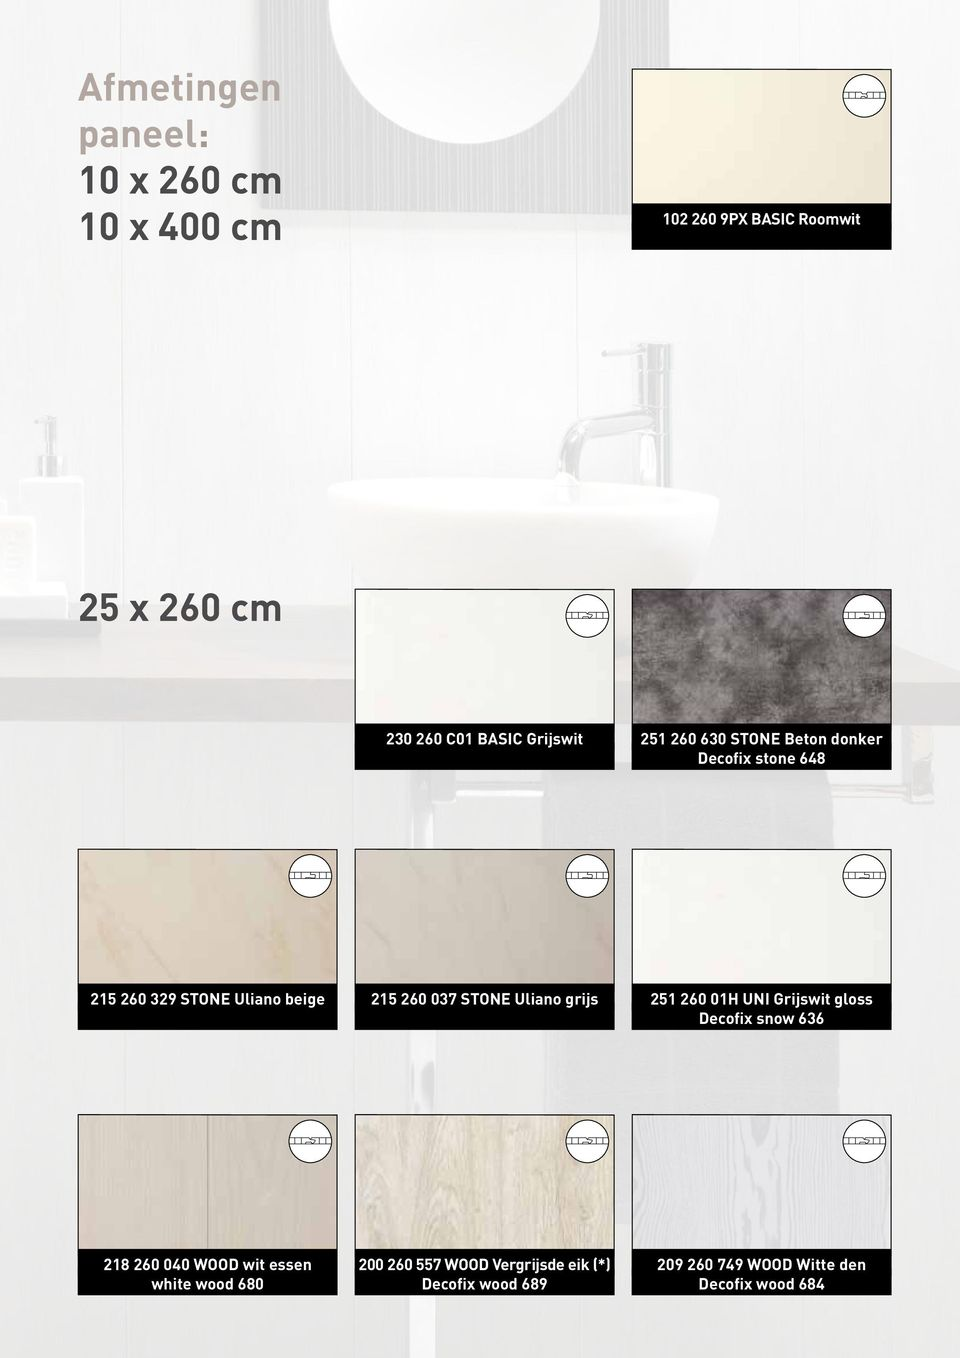 STONE Uliano grijs 251 260 01H UNI Grijswit gloss Decofix snow 636 218 260 040 WOOD wit essen white